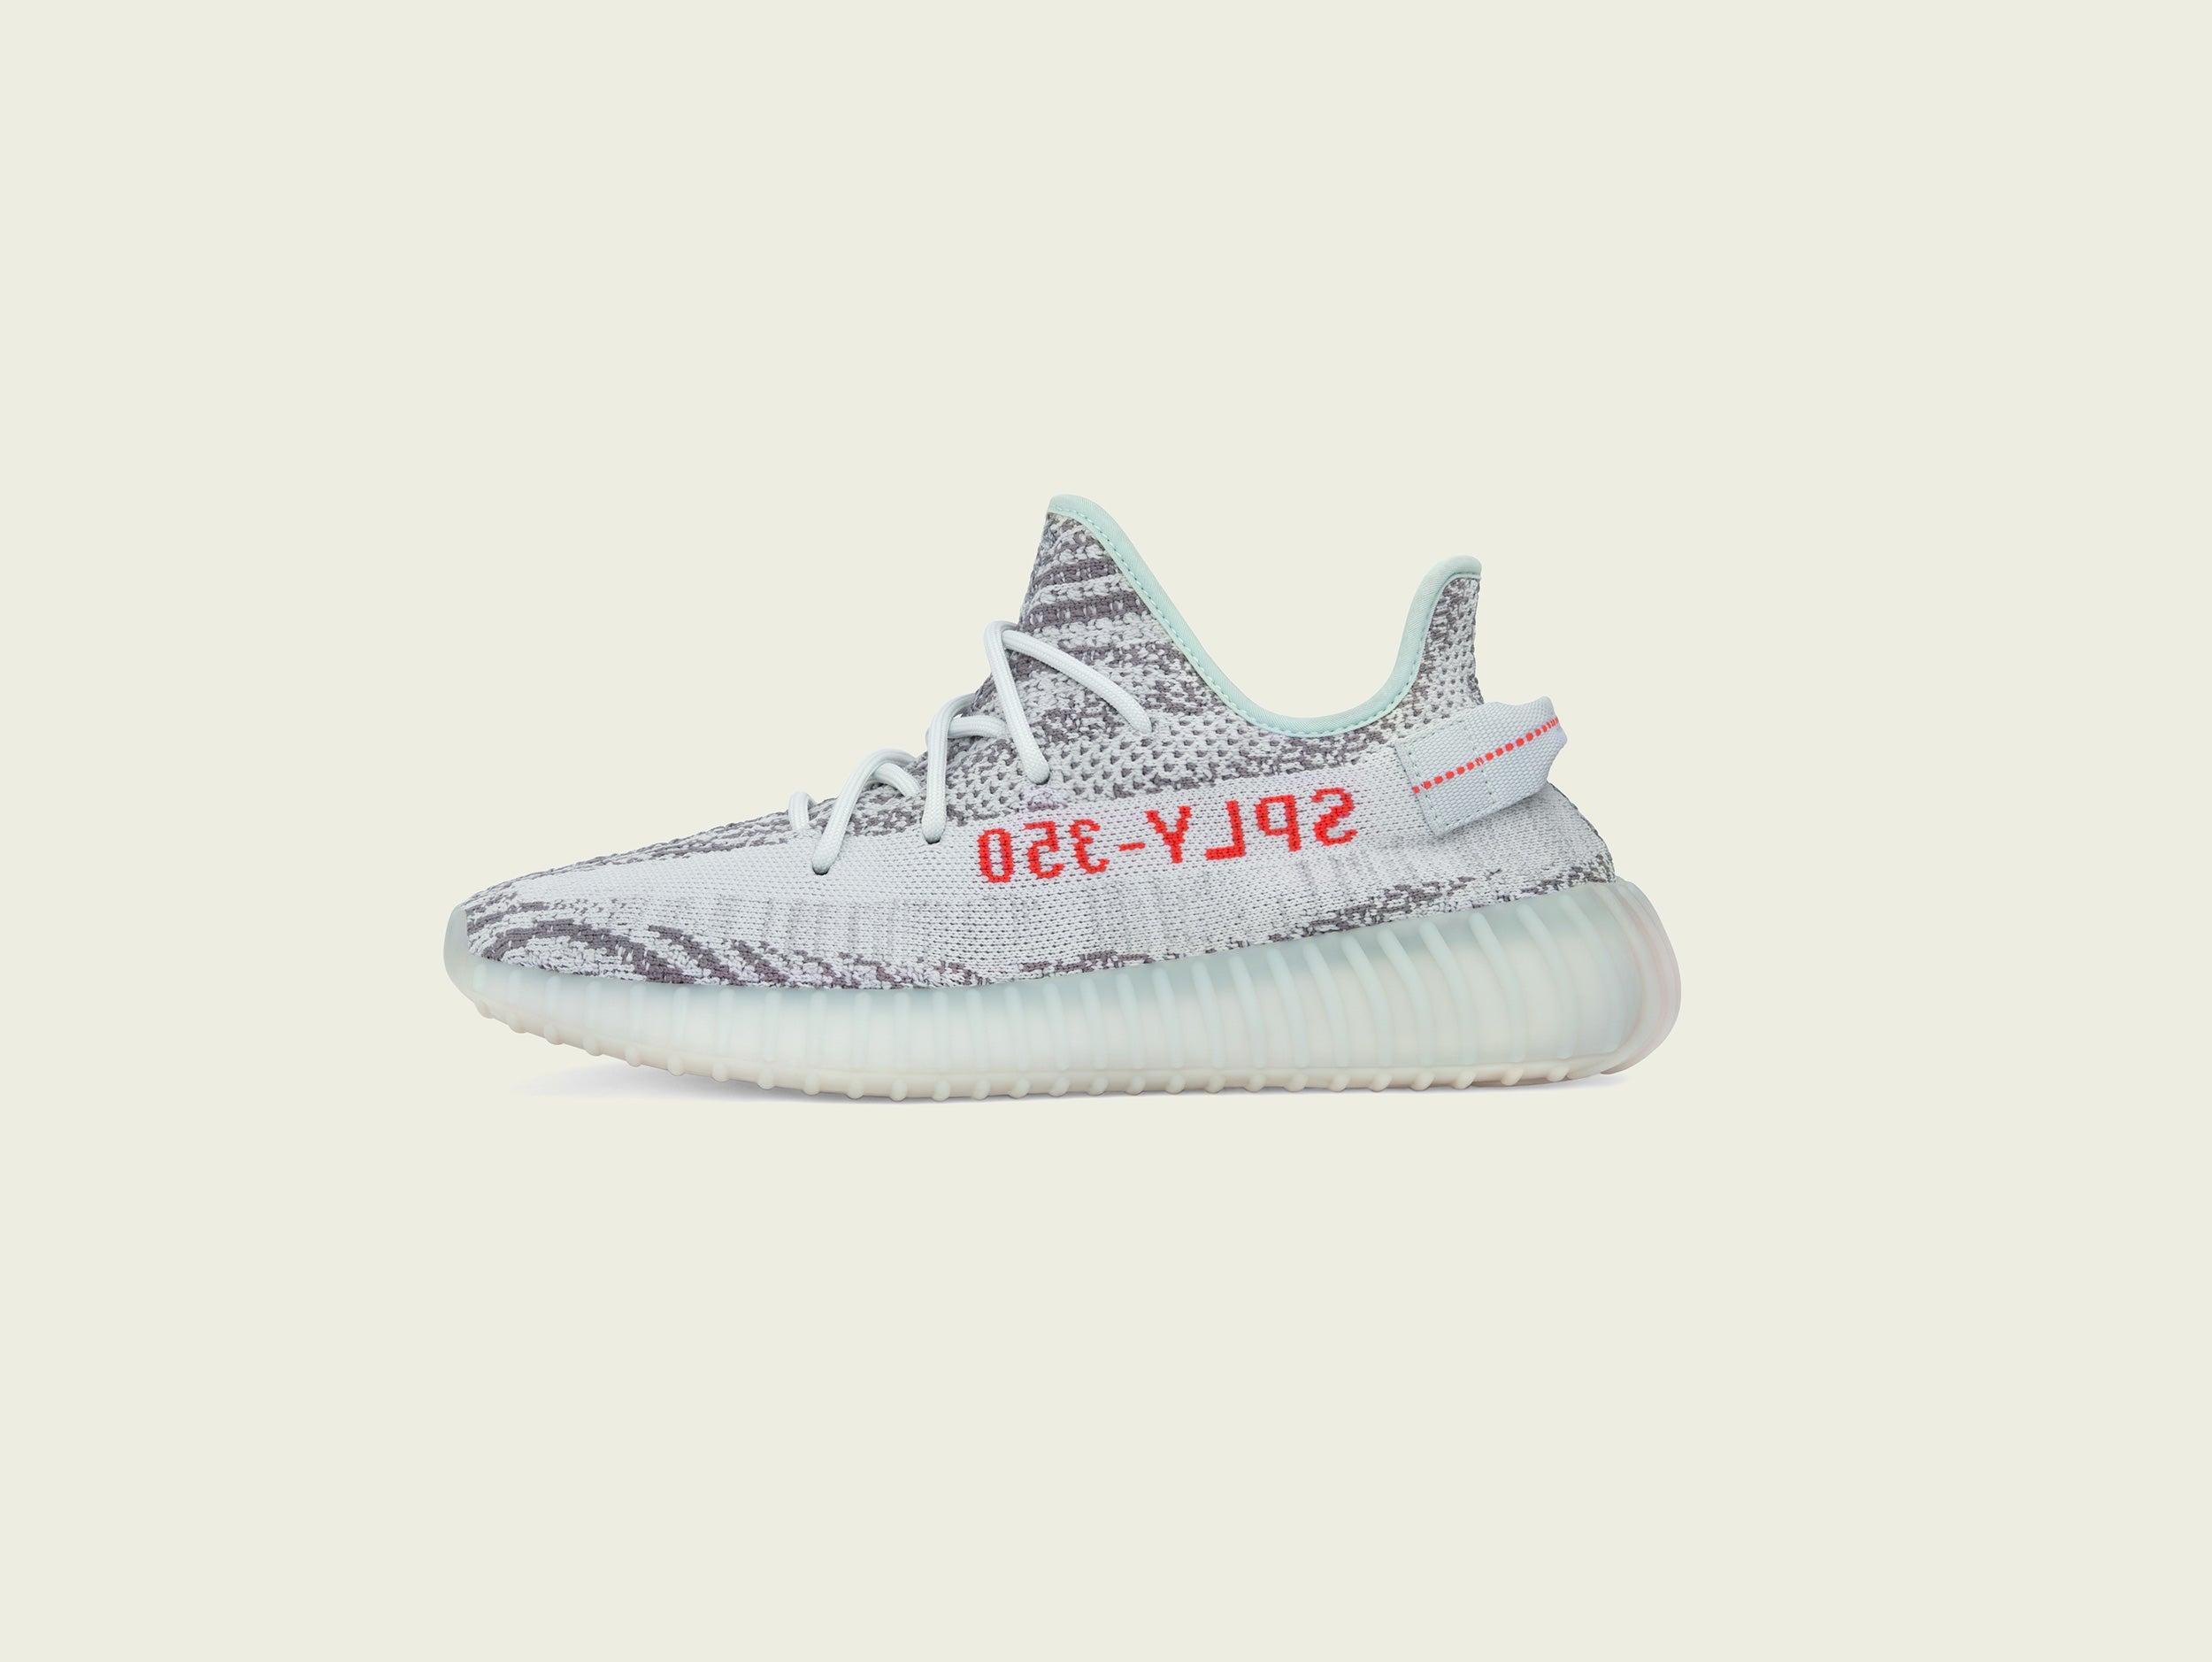 Extra Butter - Adidas Yeezy Boost V2